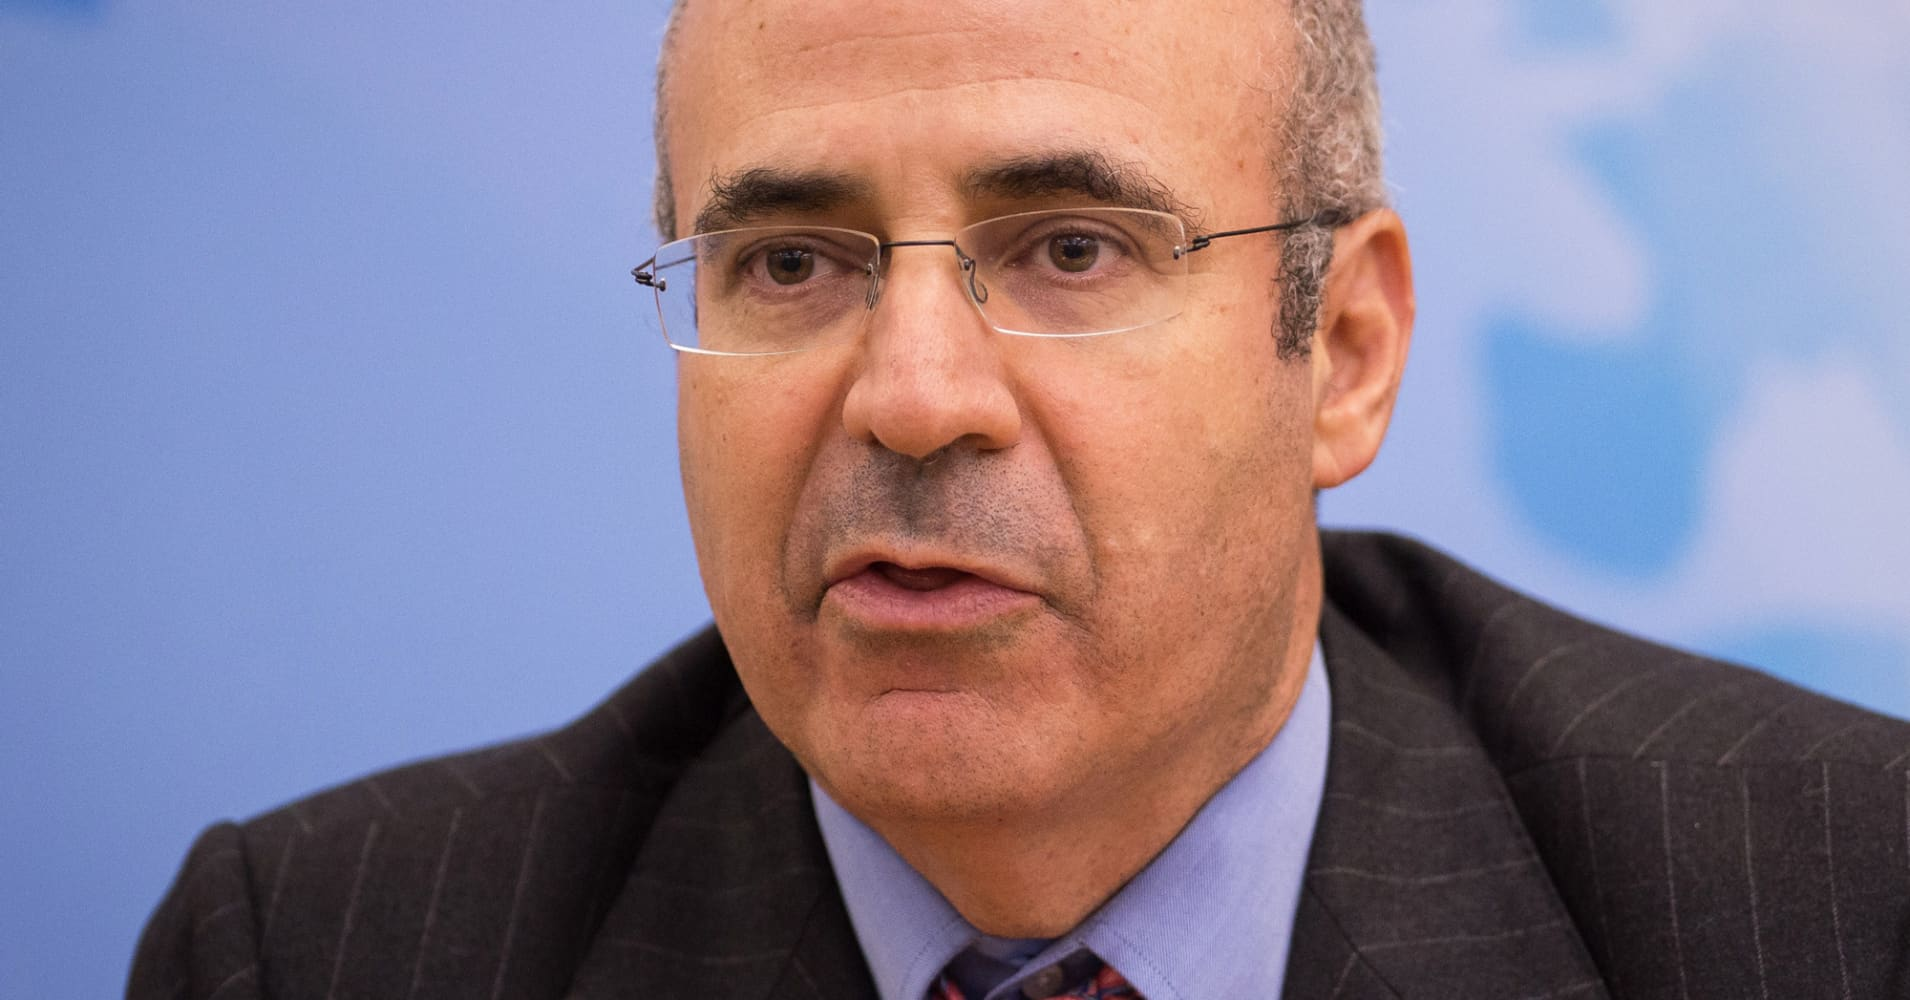 Russia sanctions advocate Bill Browder says 'there may be something sinister at foot' if visa issue lingers